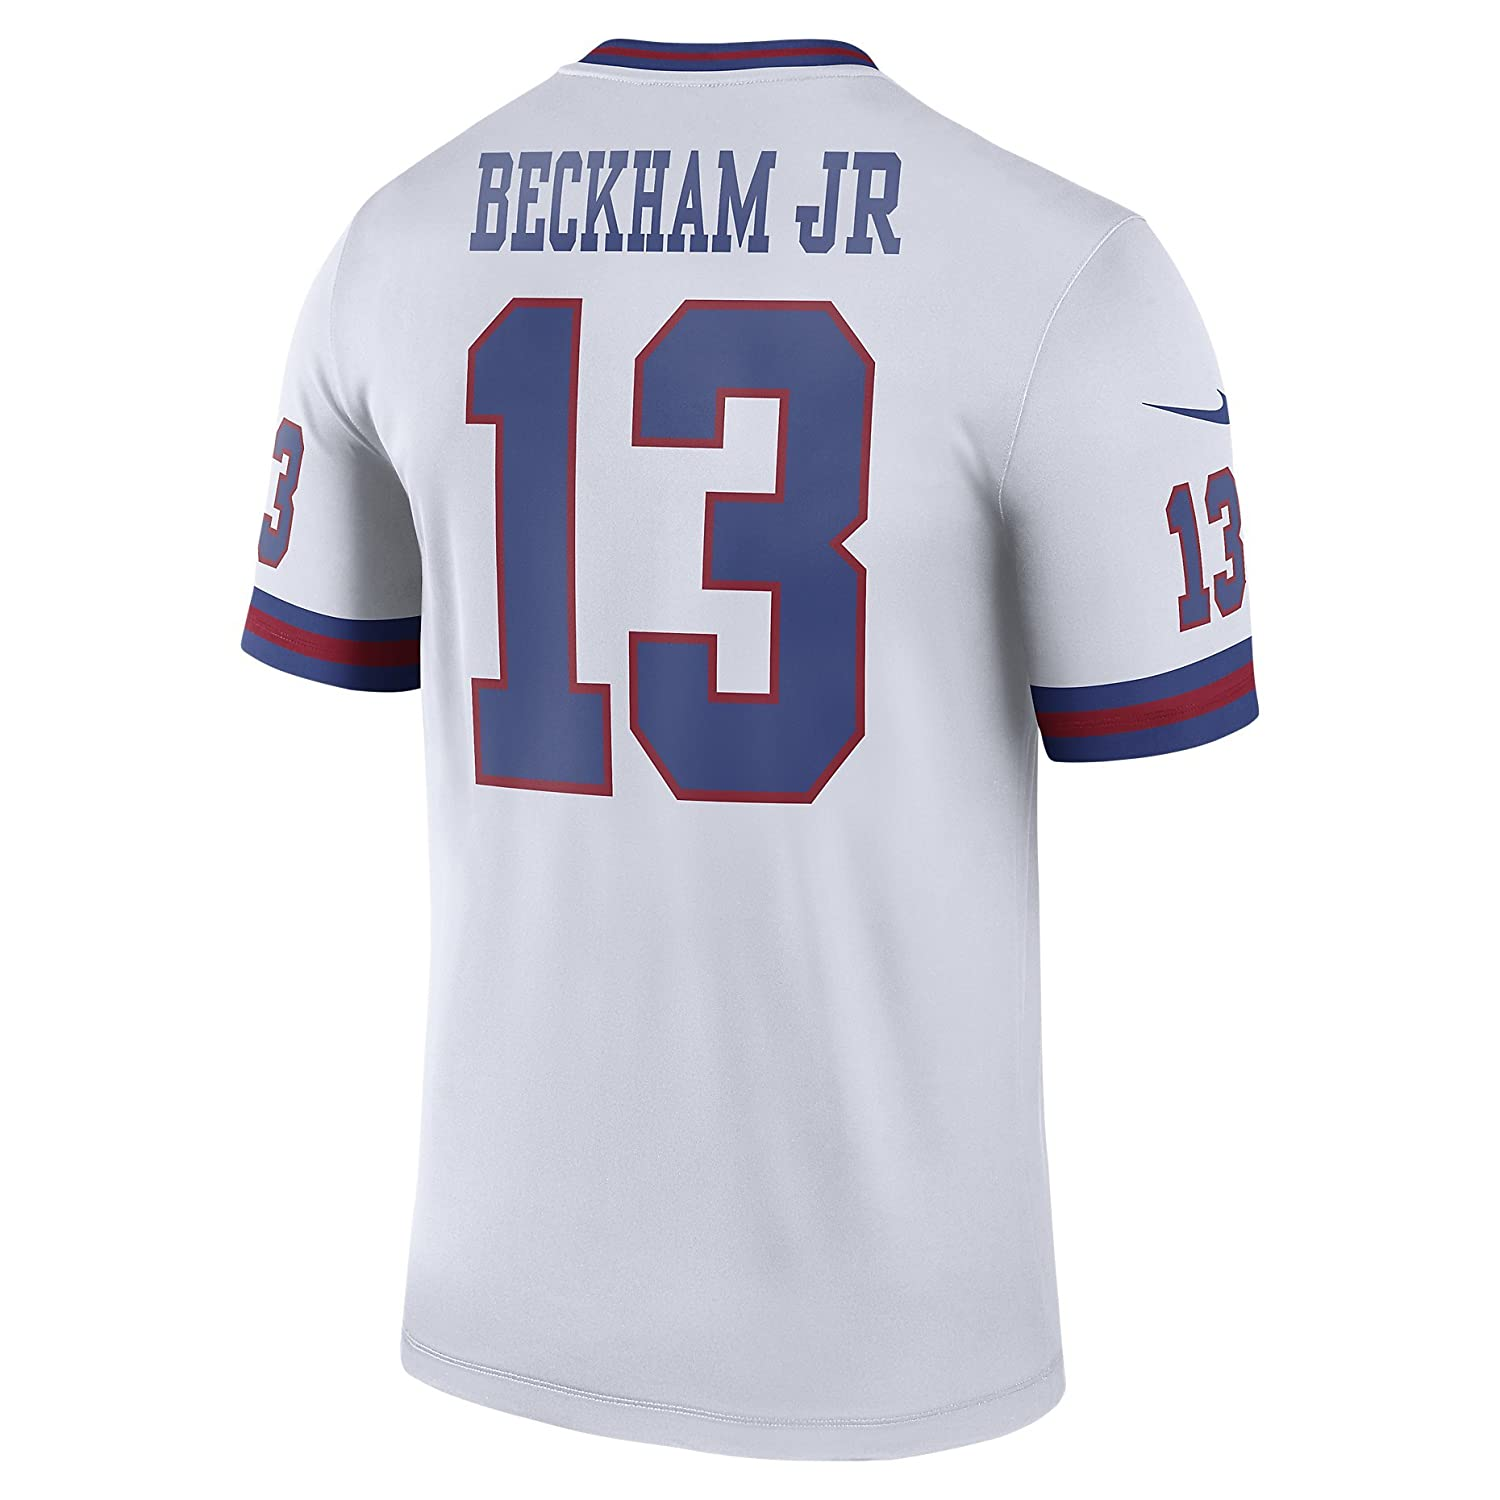 ce831ac45 Amazon.com  Nike Odell Beckham Jr. New York Giants Color Rush White Legend  Dri-FIT Jersey - Men s Large  Clothing